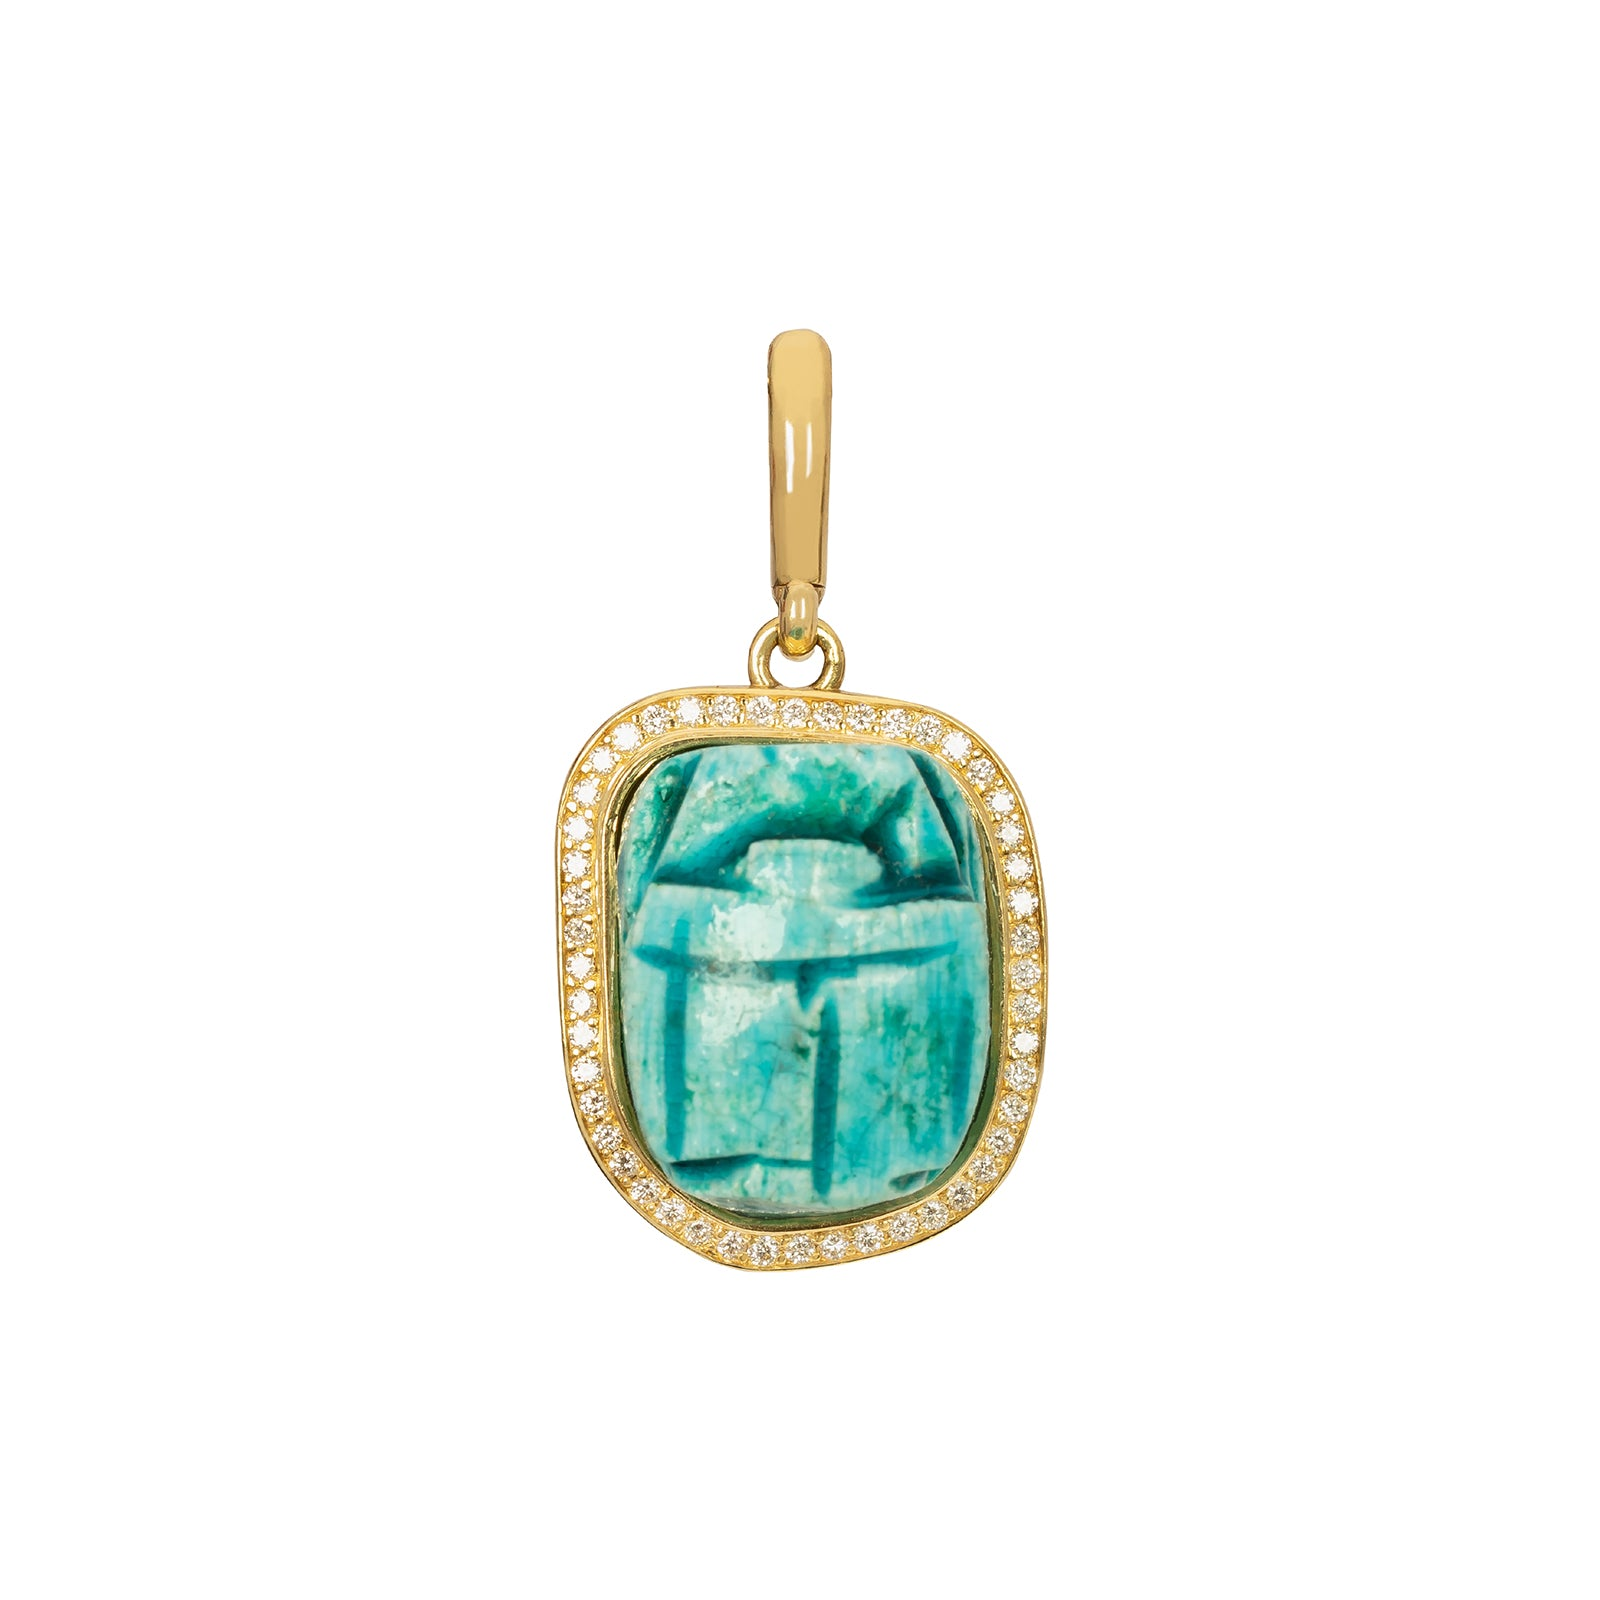 Jenna Blake Turquoise Scarab Pendant - Charms & Pendants - Broken English Jewelry